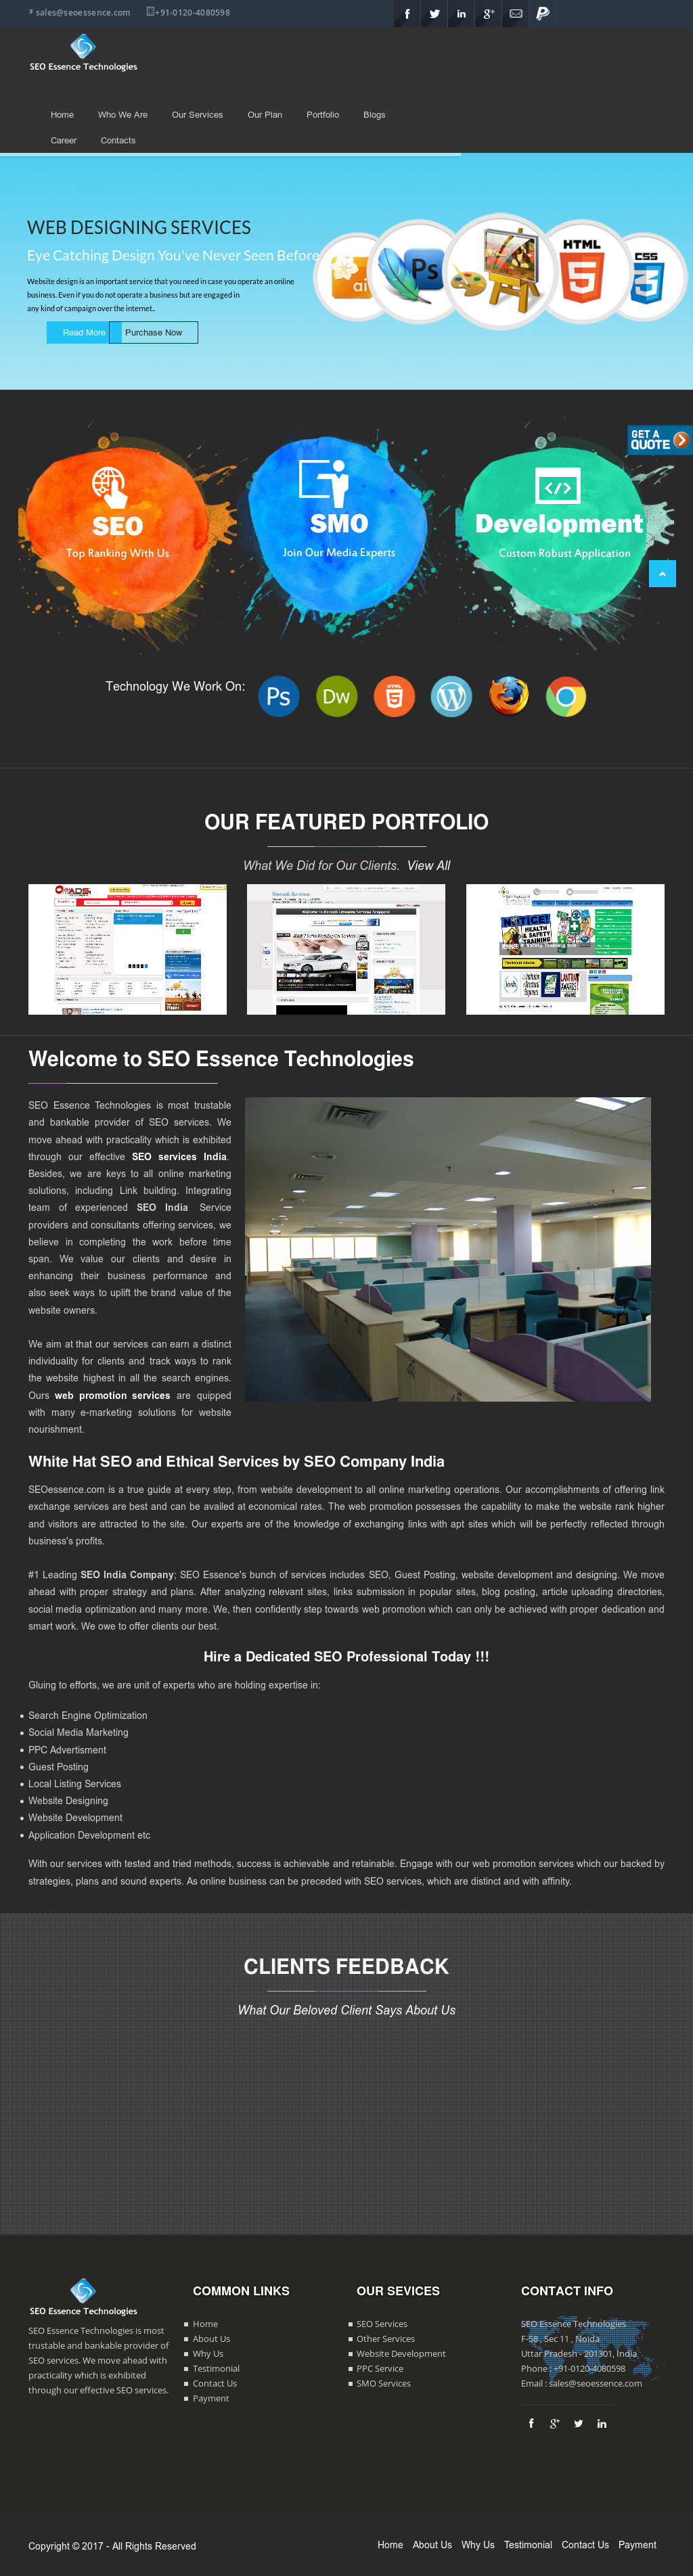 Seo Essence Technologies Competitors, Revenue and Employees